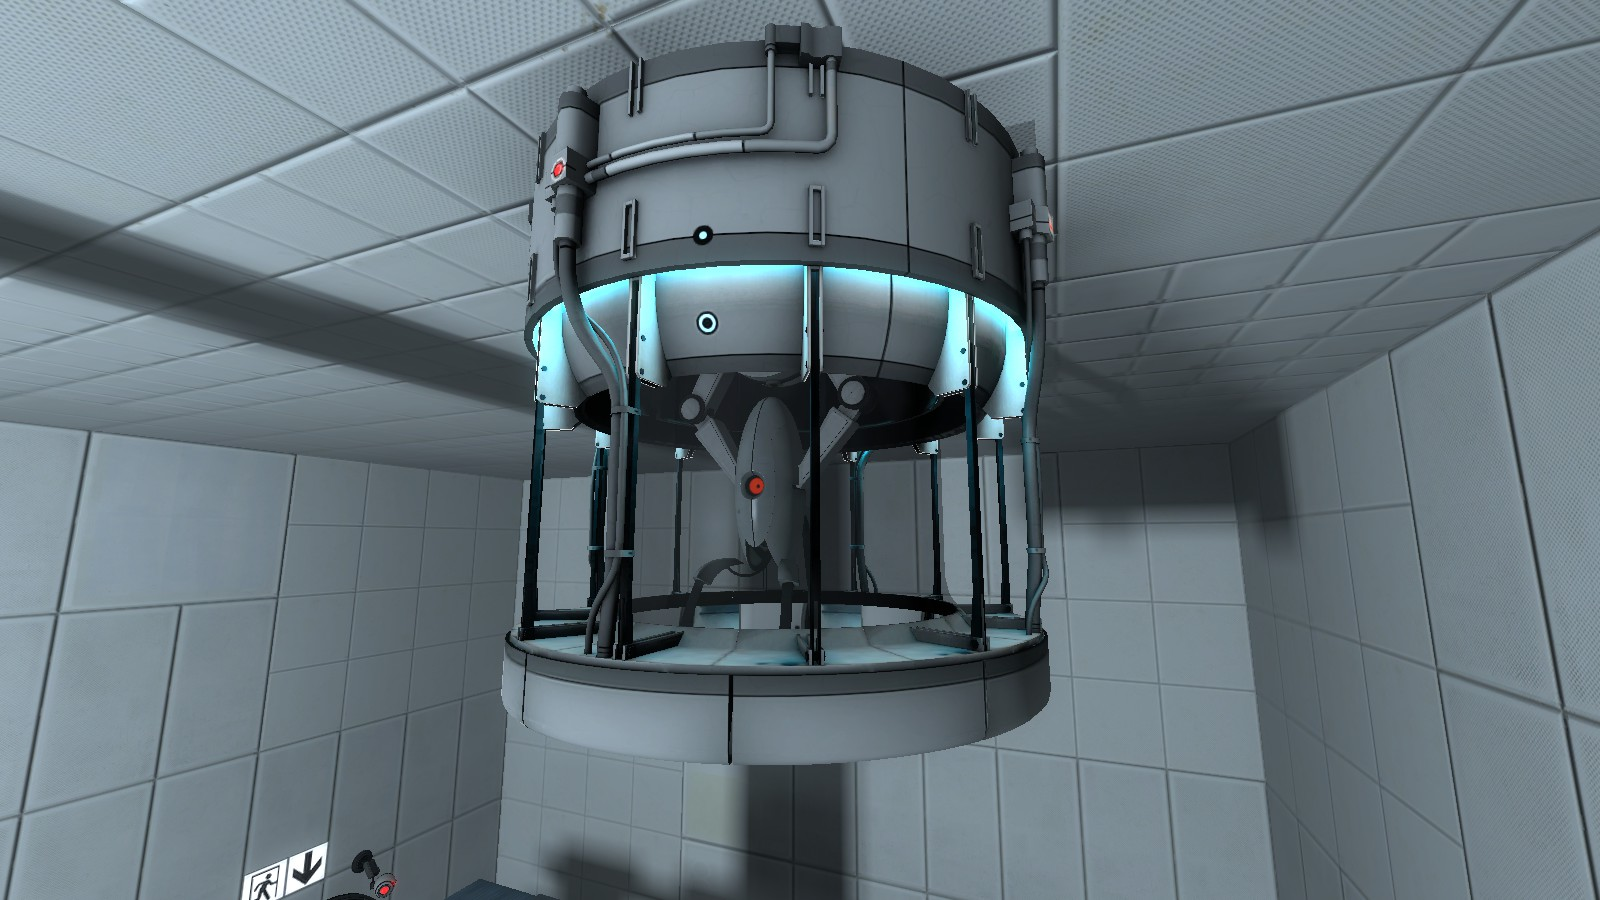 Turret Dropper | Portal 2 PTI Wiki | FANDOM powered by Wikia on the disease map, the drifter map, the glass map,